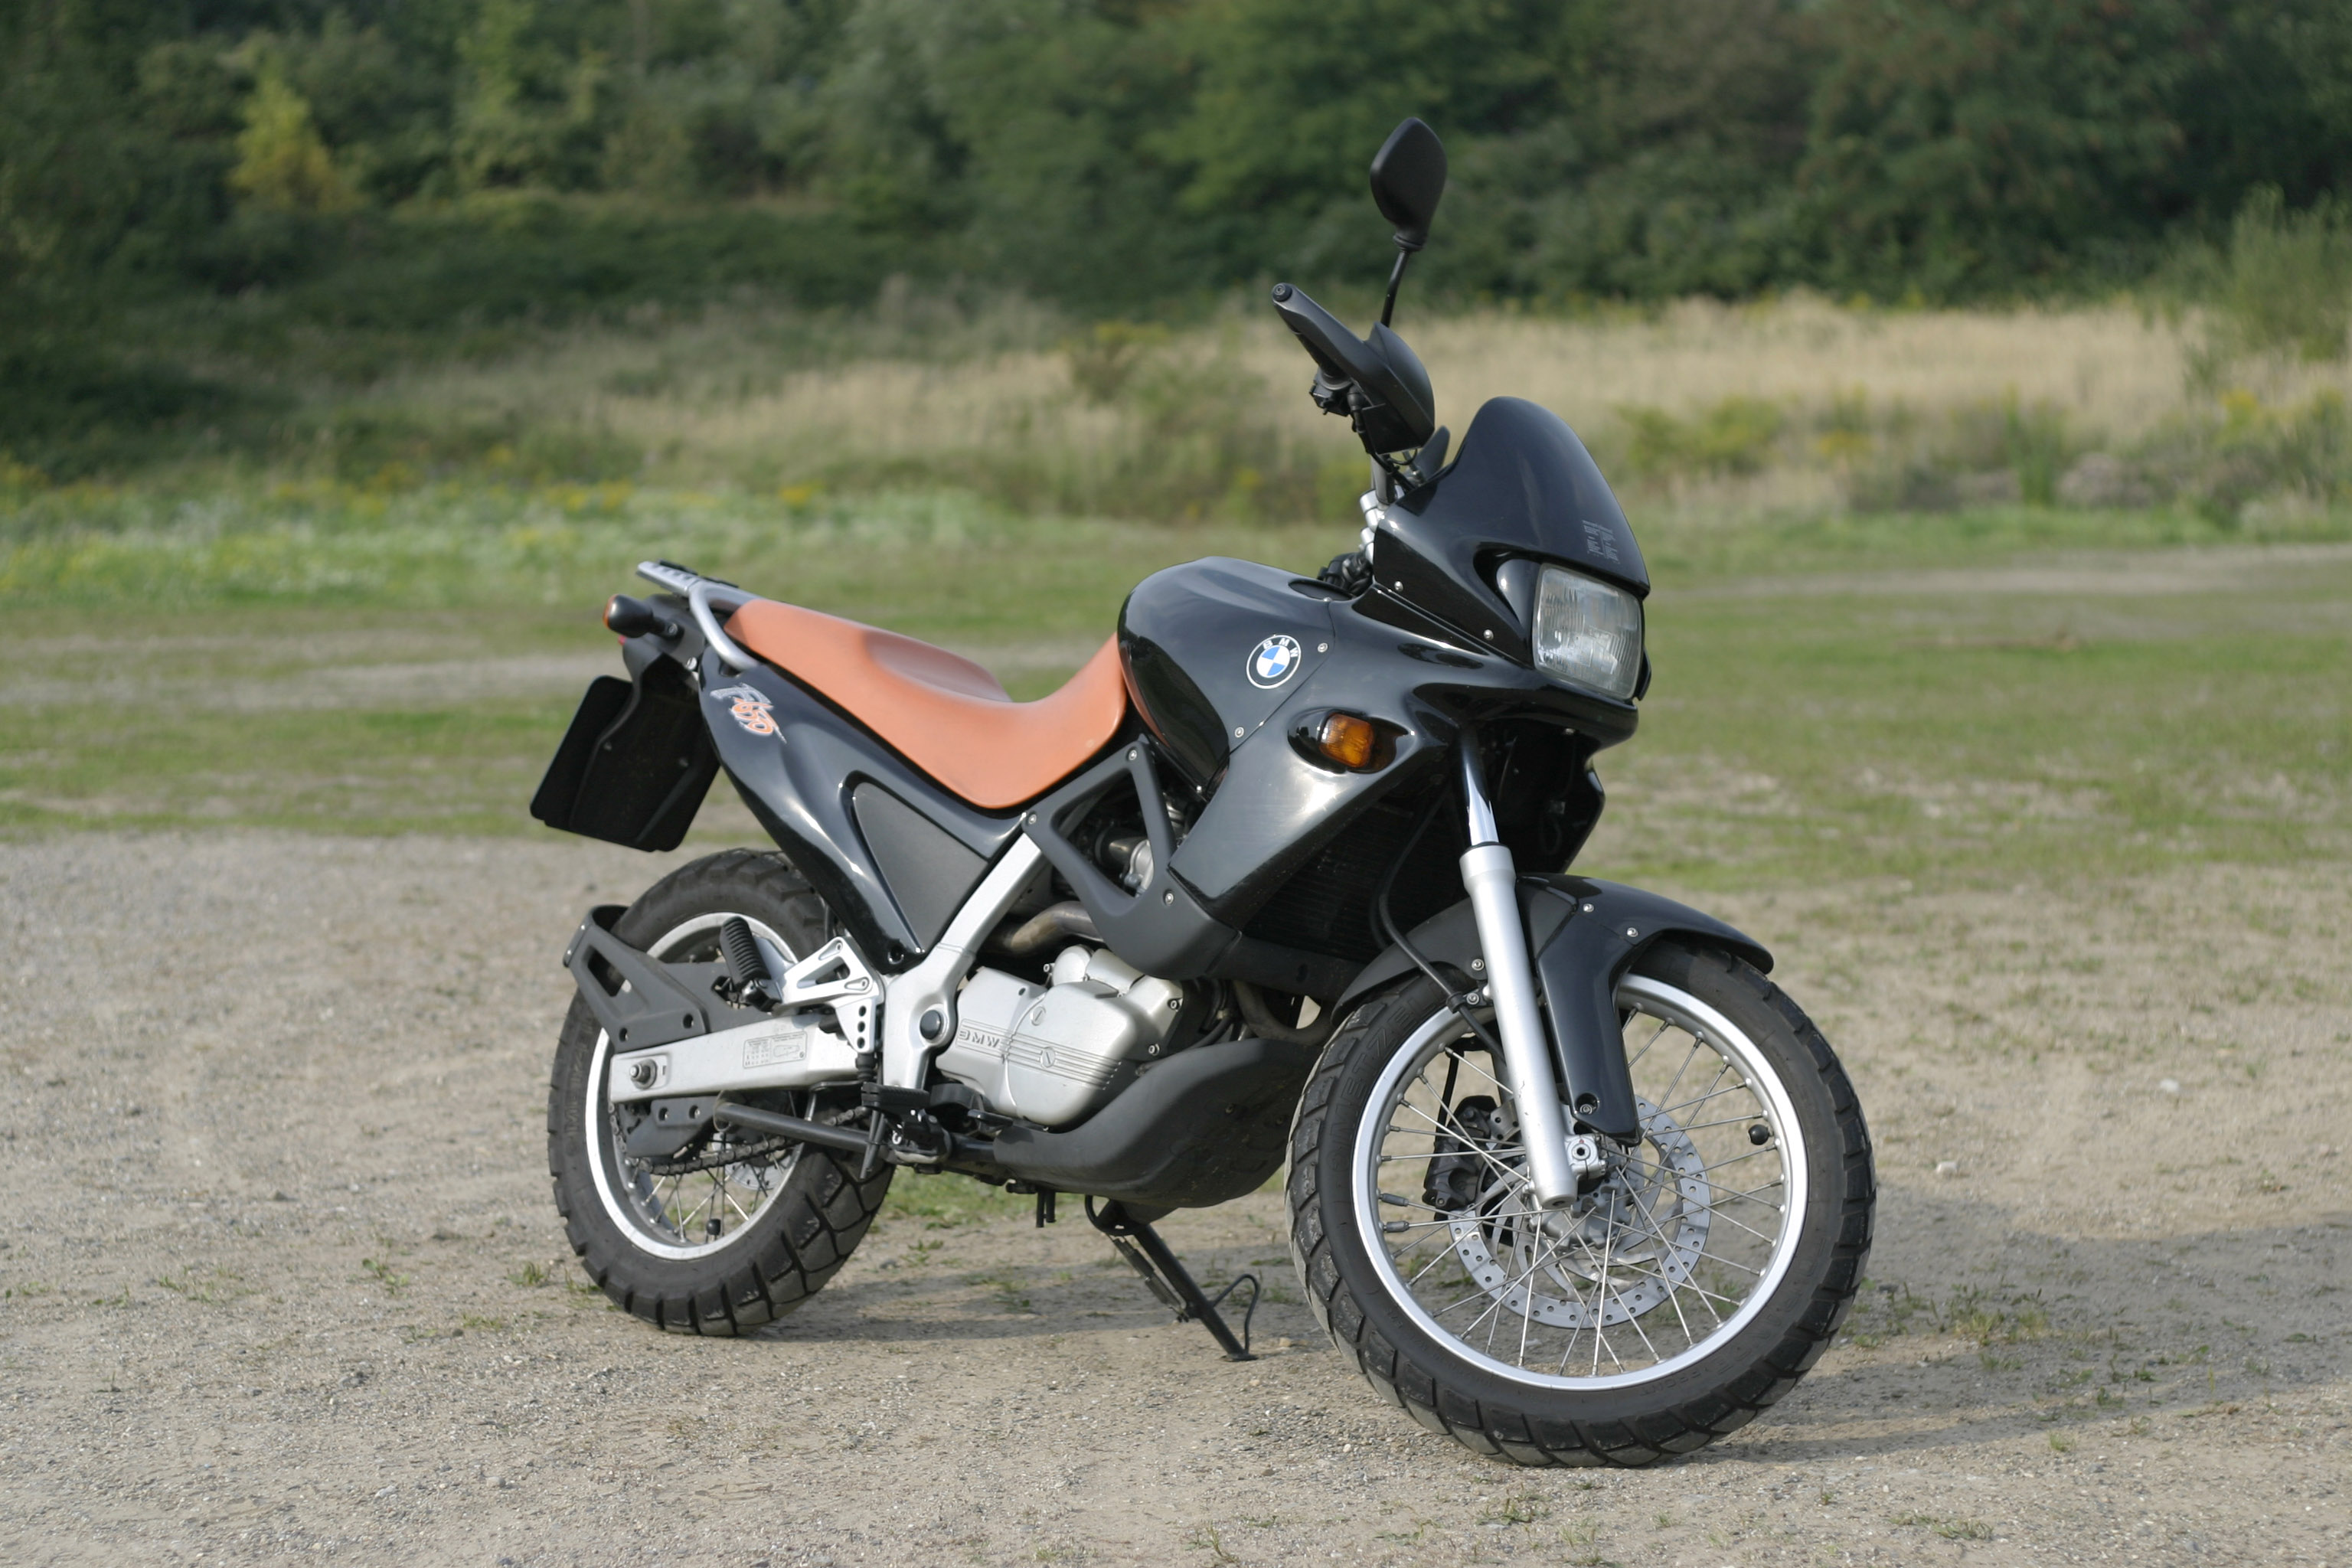 File Motorcycle Bmw F650 St 04 Jpg Wikimedia Commons